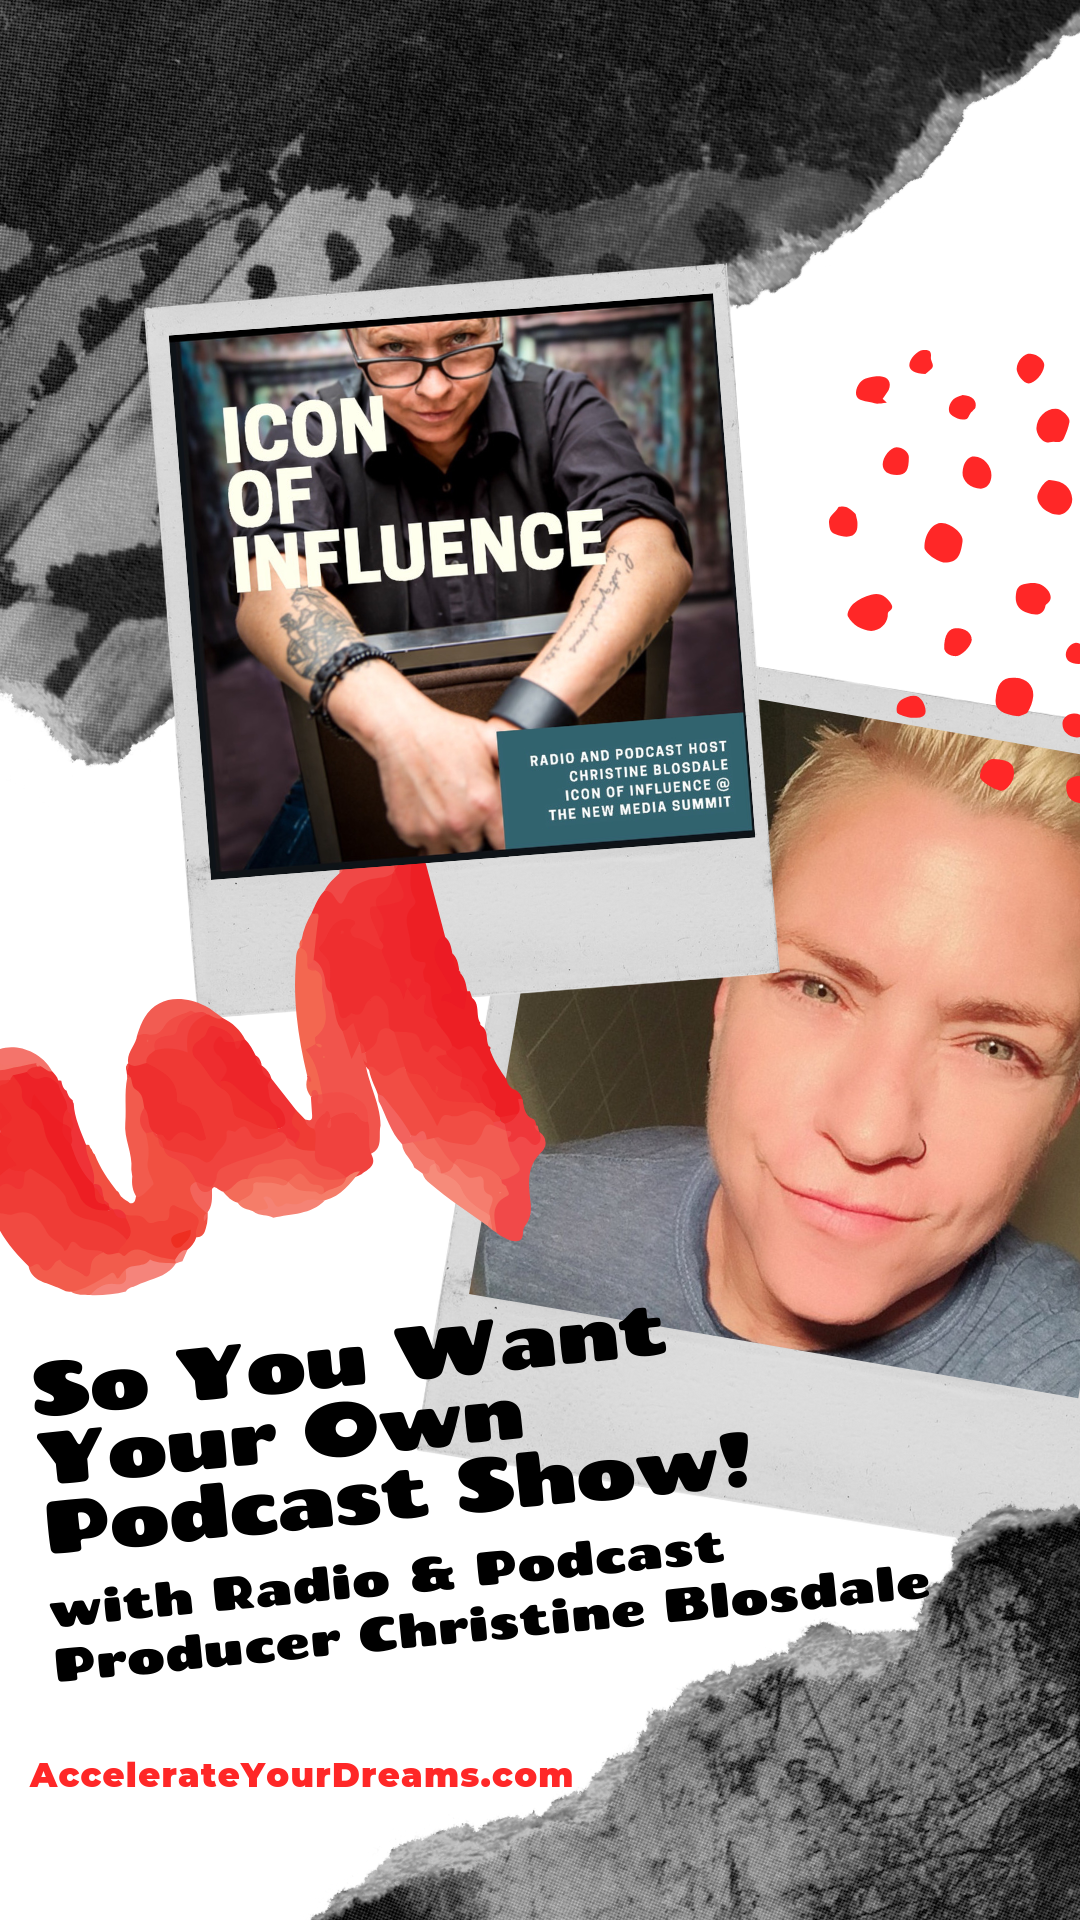 """""""SO YOU WANT YOUR OWN PODCAST SHOW"""" WEBINAR WORKSHOP - Learn how to CREATE YOUR VERY OWN PODCAST SHOW (and find out why this is one of the best ways to expand your Brand and Business) with Award Winning Podcast and Radio Producer CHRISTINE BLOSDALE (host of the Out of the Box With Christine Podcast Show).In this 90 minute program Christine offers you valuable information on how to develop your podcast show, maximize your impact on interviews, what tools and programs you will need to get started, and how you can save tons of money setting up your podcast!"""